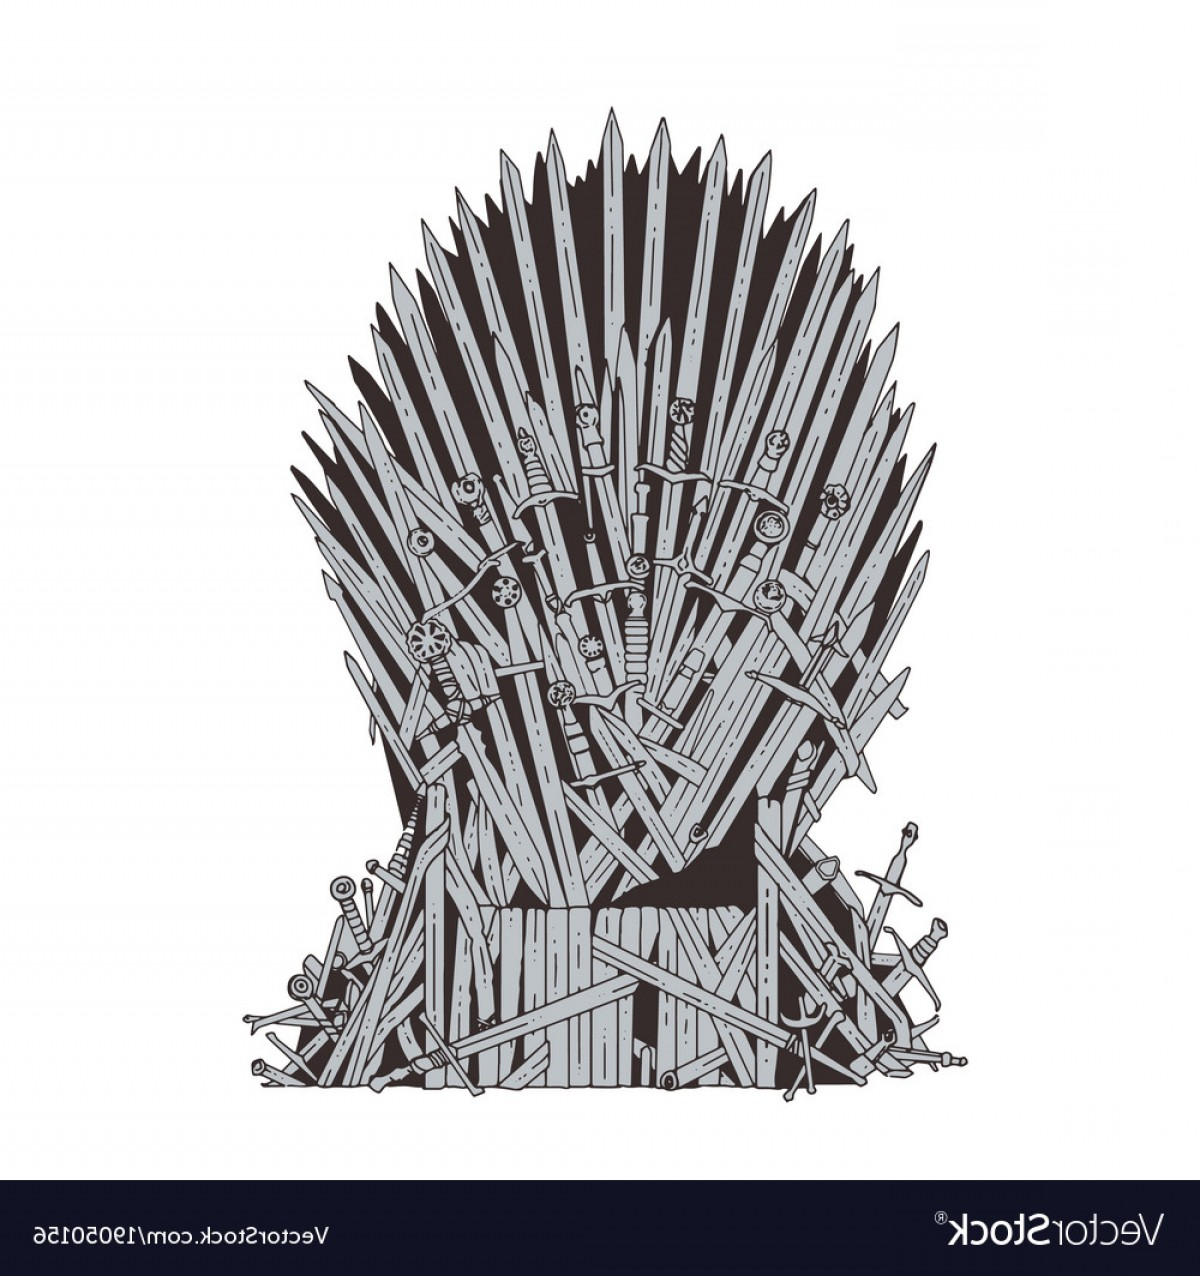 Game Of Thrones Sword Silhouette Vector: Hand Drawn Iron Throne Of Westeros Made Of Antique Vector